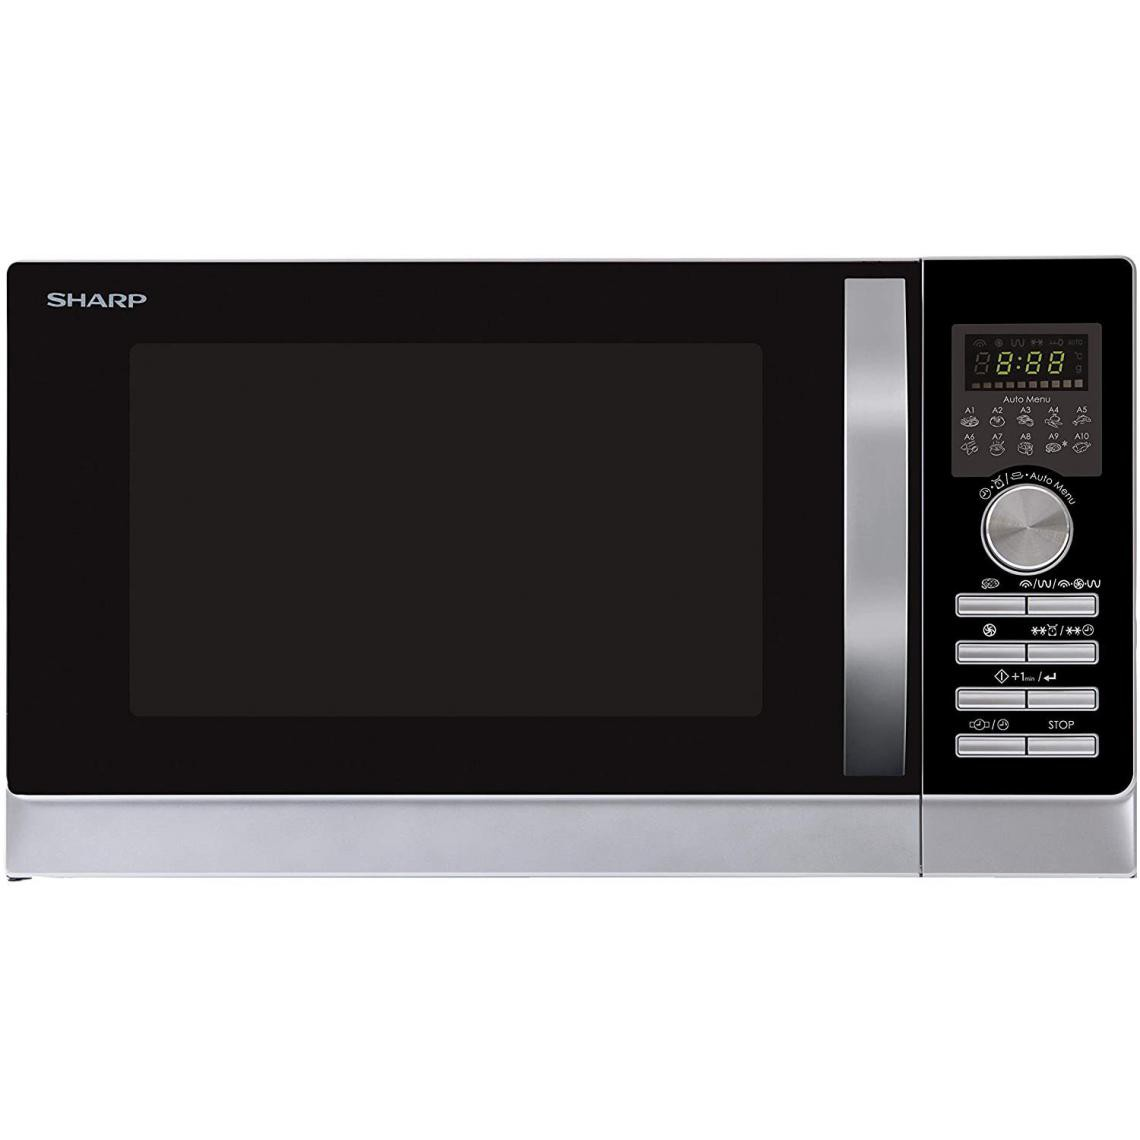 Sharp Micro-ondes Grill - 25L - 900W - R843INW Argent